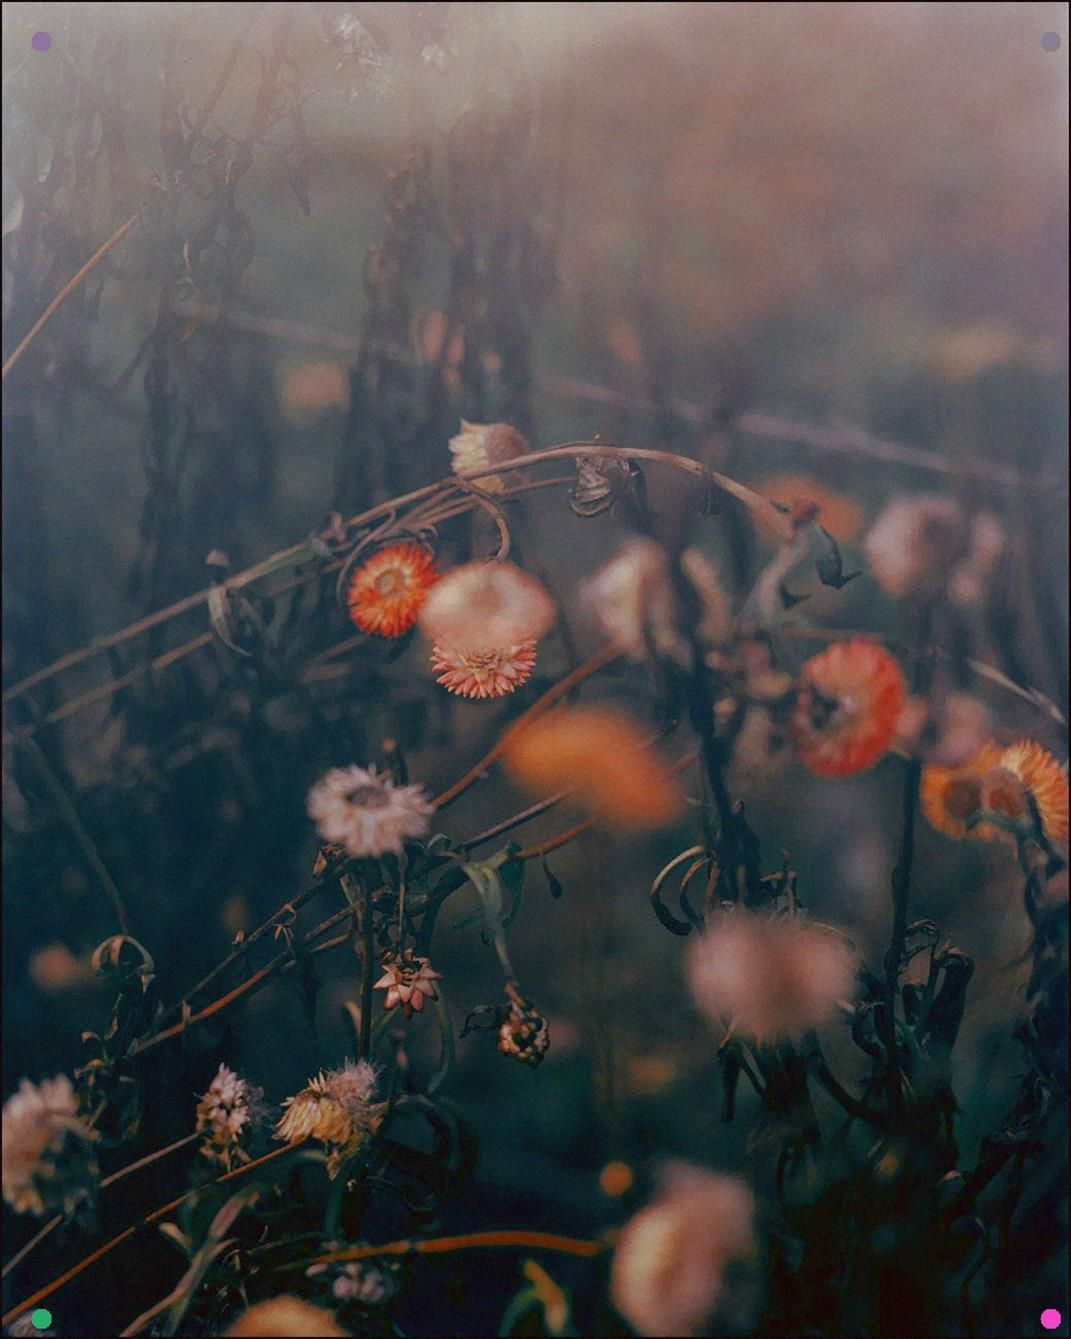 Nich Hance Mcelroy in 2020 Growth and decay, Flowers for